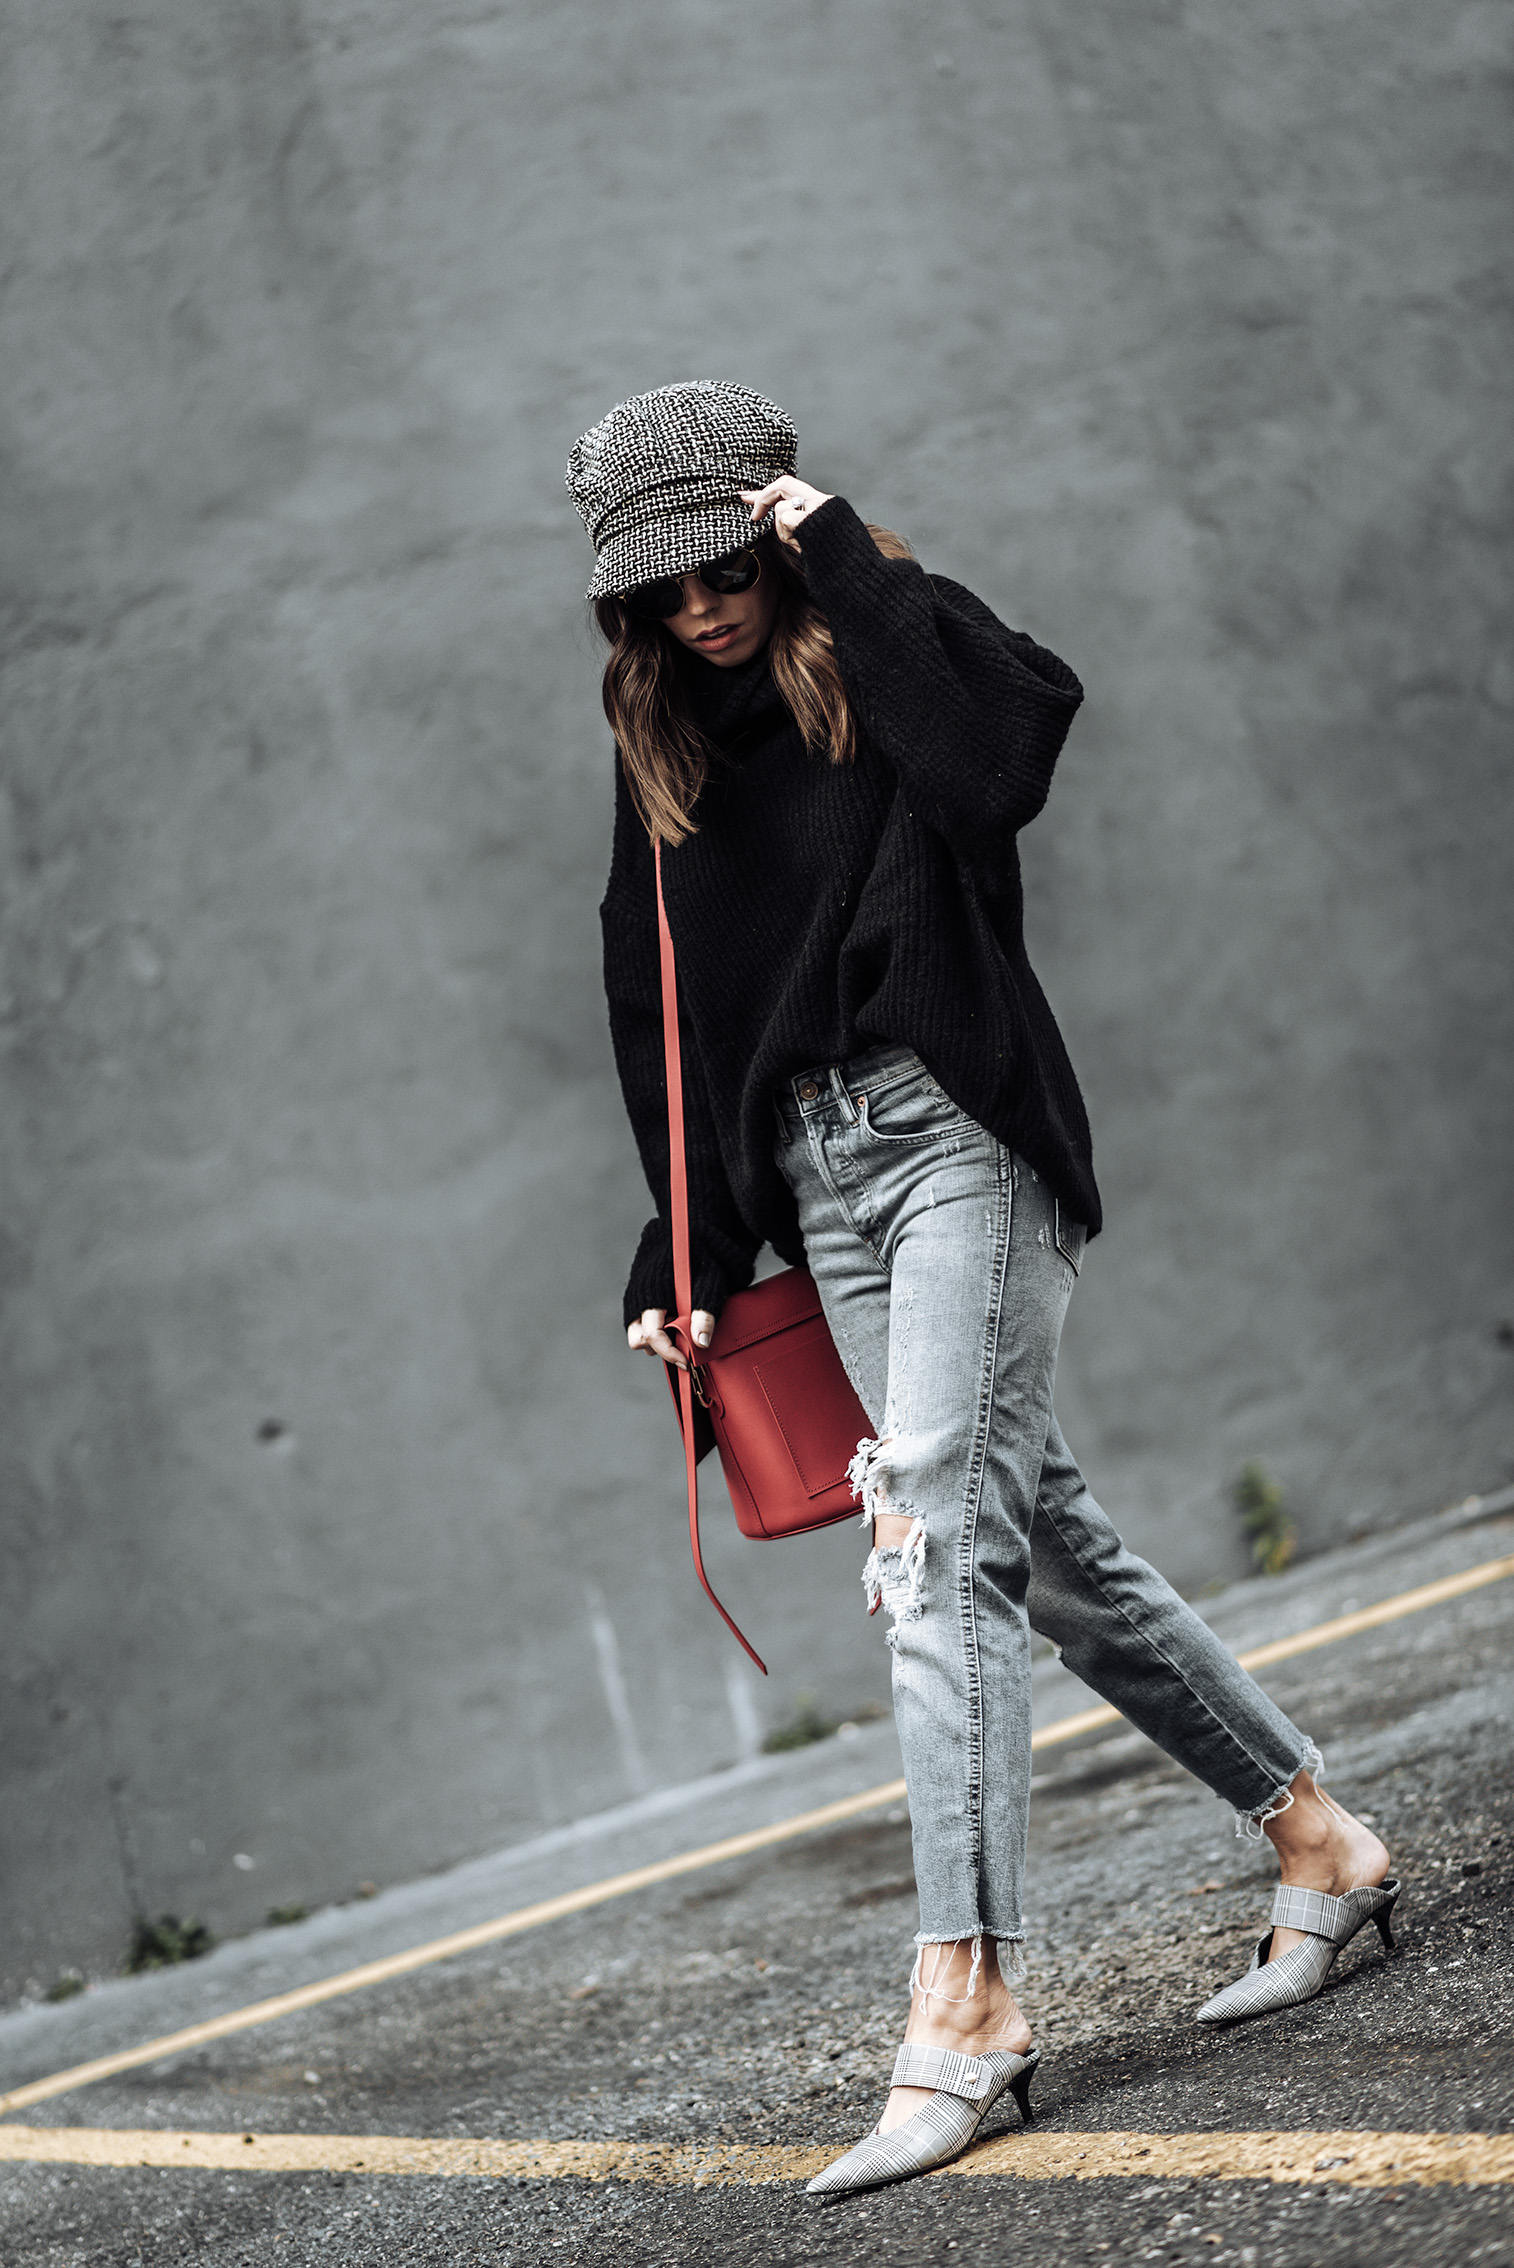 Click to shop the exact look: Plaid mules   Jeans   Oversized Sweater   Bakers Hat   Zac Posen Bag  Tiffany Jais fashion and lifestyle blogger of Flaunt and Center   Houston fashion blogger   Mixing Plaid   Streetstyle blog